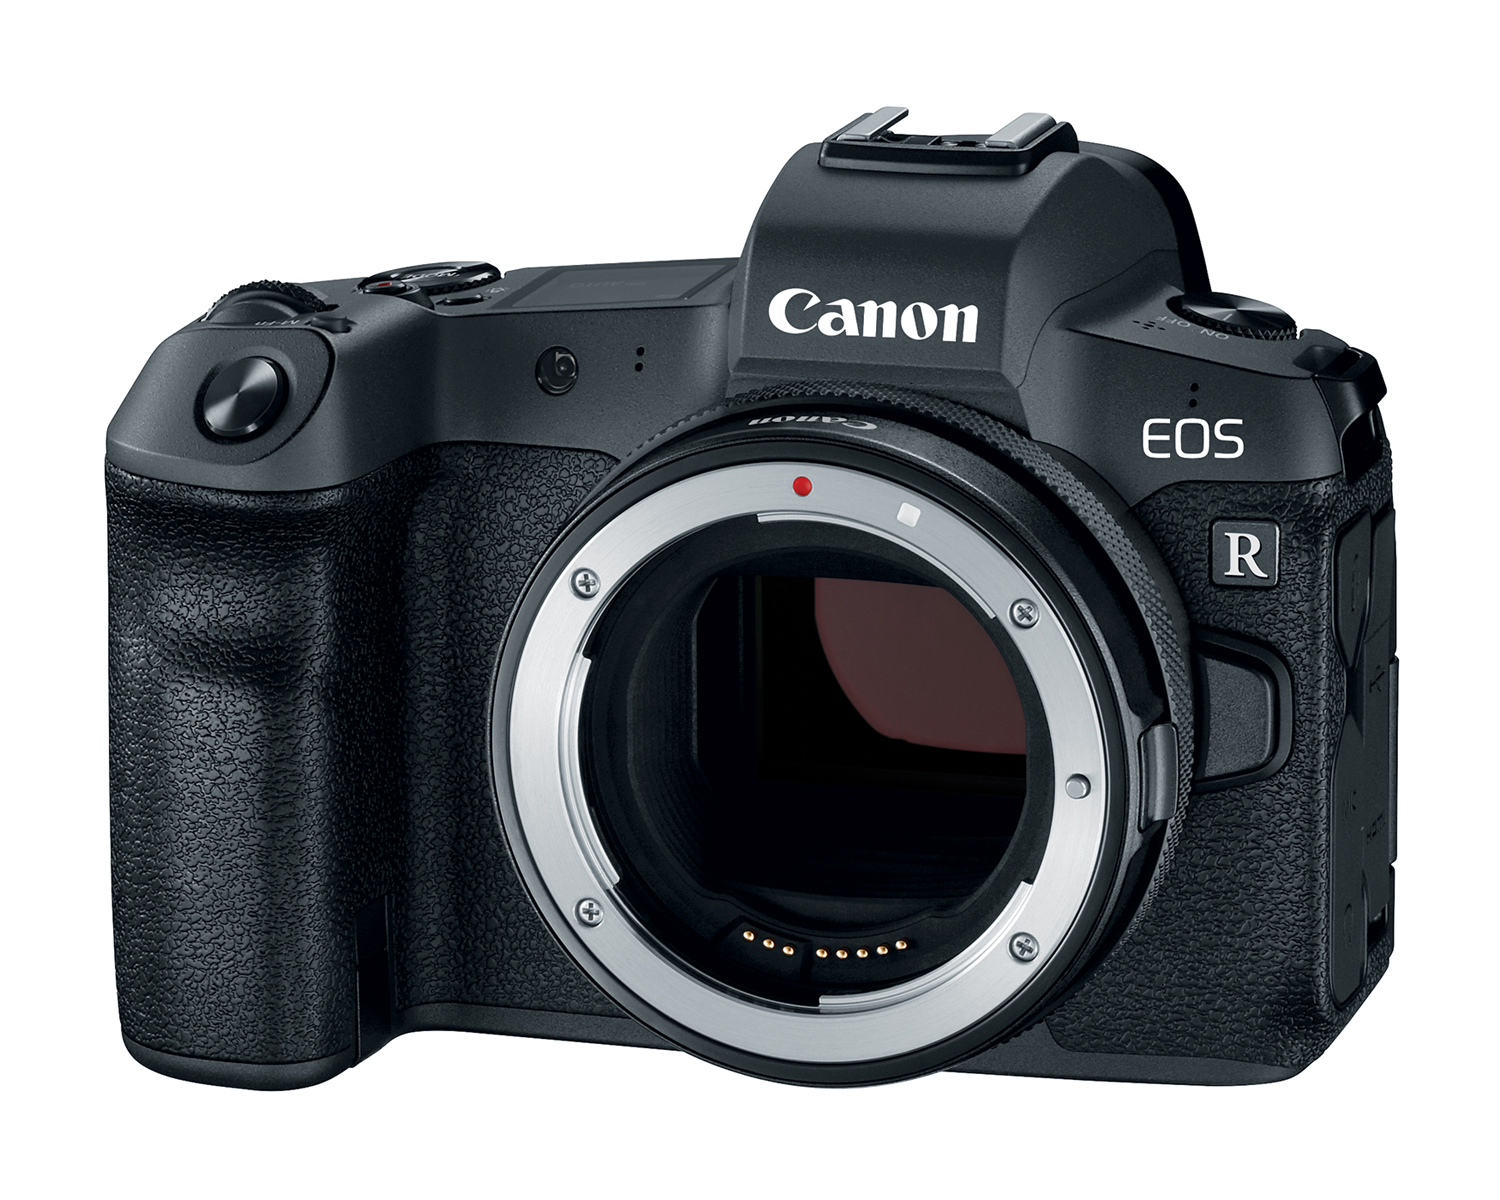 IBIS To Be Featured On Future Canon EOS R Cameras? [CW2]